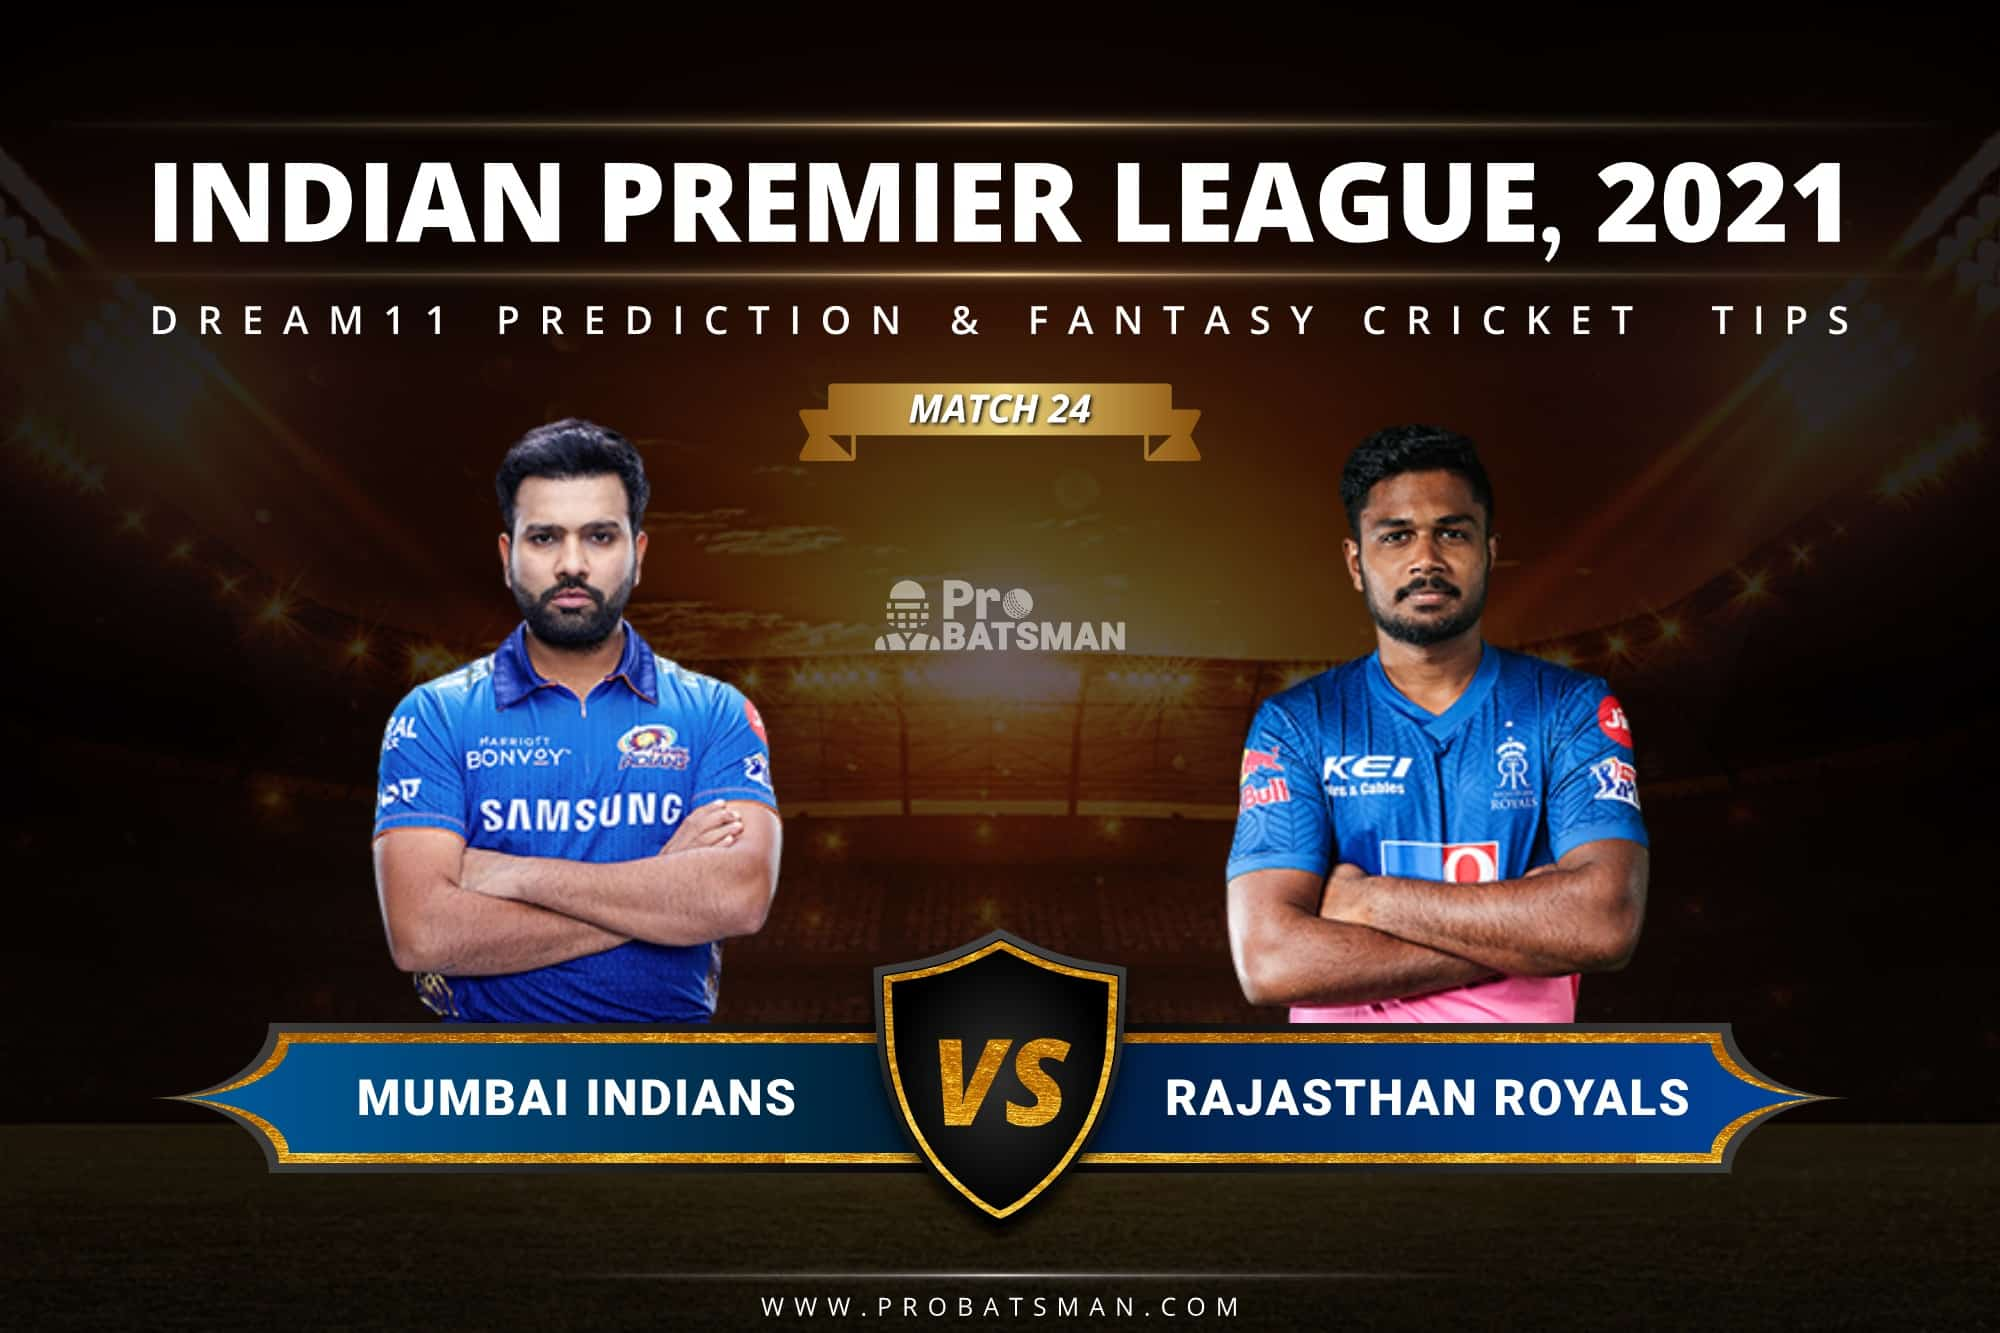 MI vs RR Dream11 Prediction: Fantasy Cricket Tips, Playing XI, Pitch Report, Stats & Injury Updates of Match 24, IPL 2021